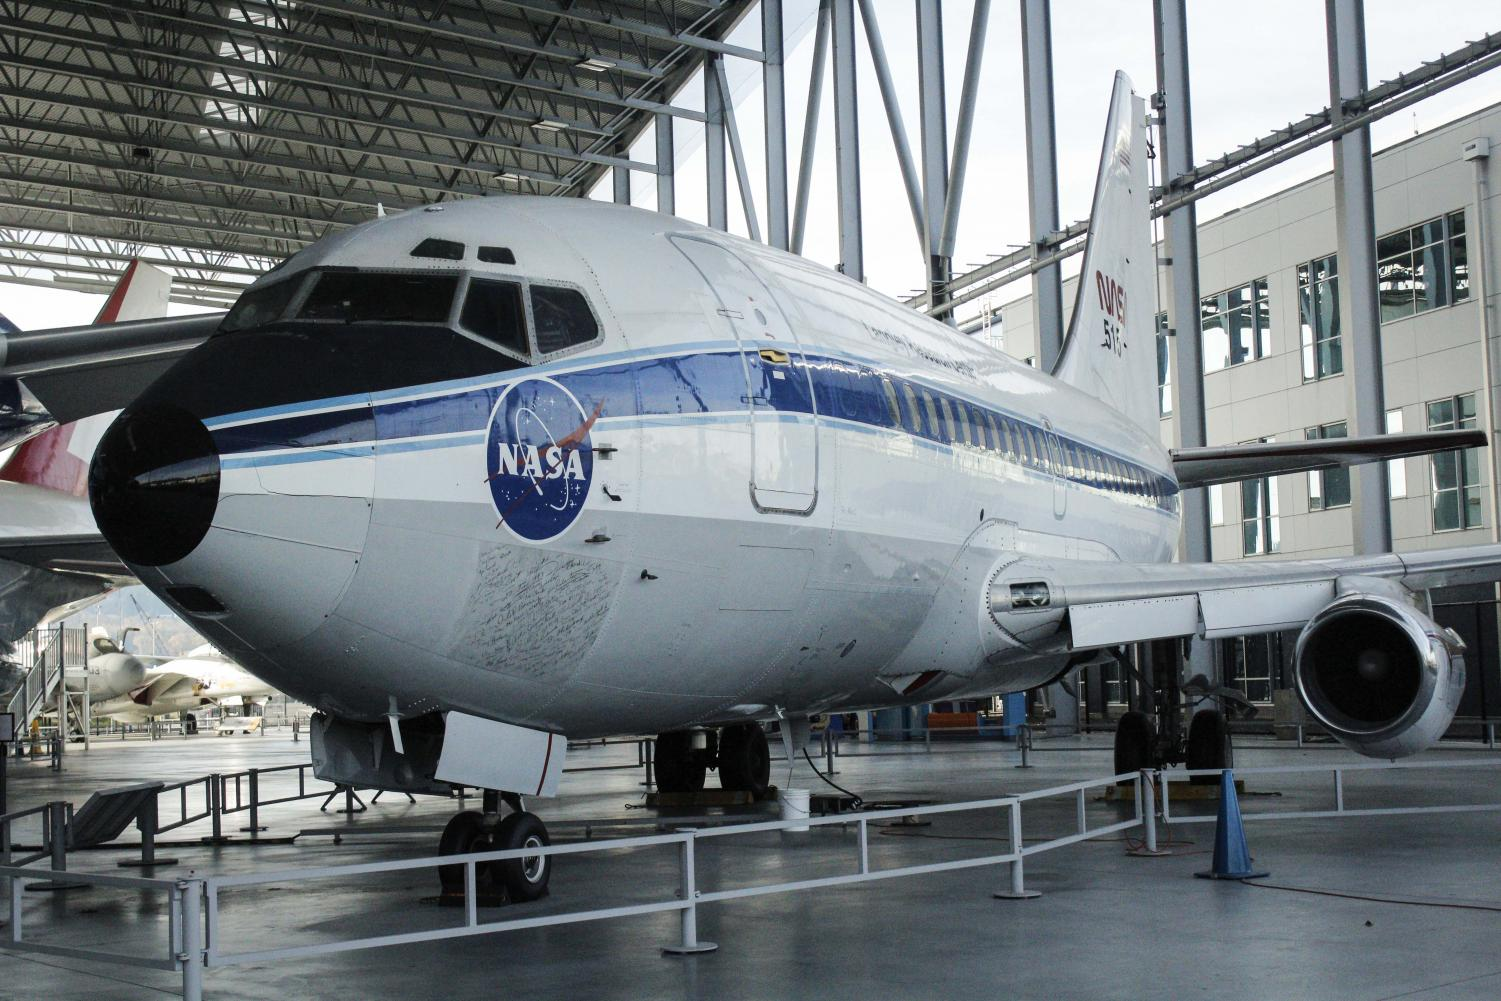 The prototype 737 sits on static display at The Museum Of Flight  located in Tukwila Washington at the south end of King County International Airport. Since it's first flight back in 1967, the 737 has been Boeing's most-sold airplane in the company's commercial sector.